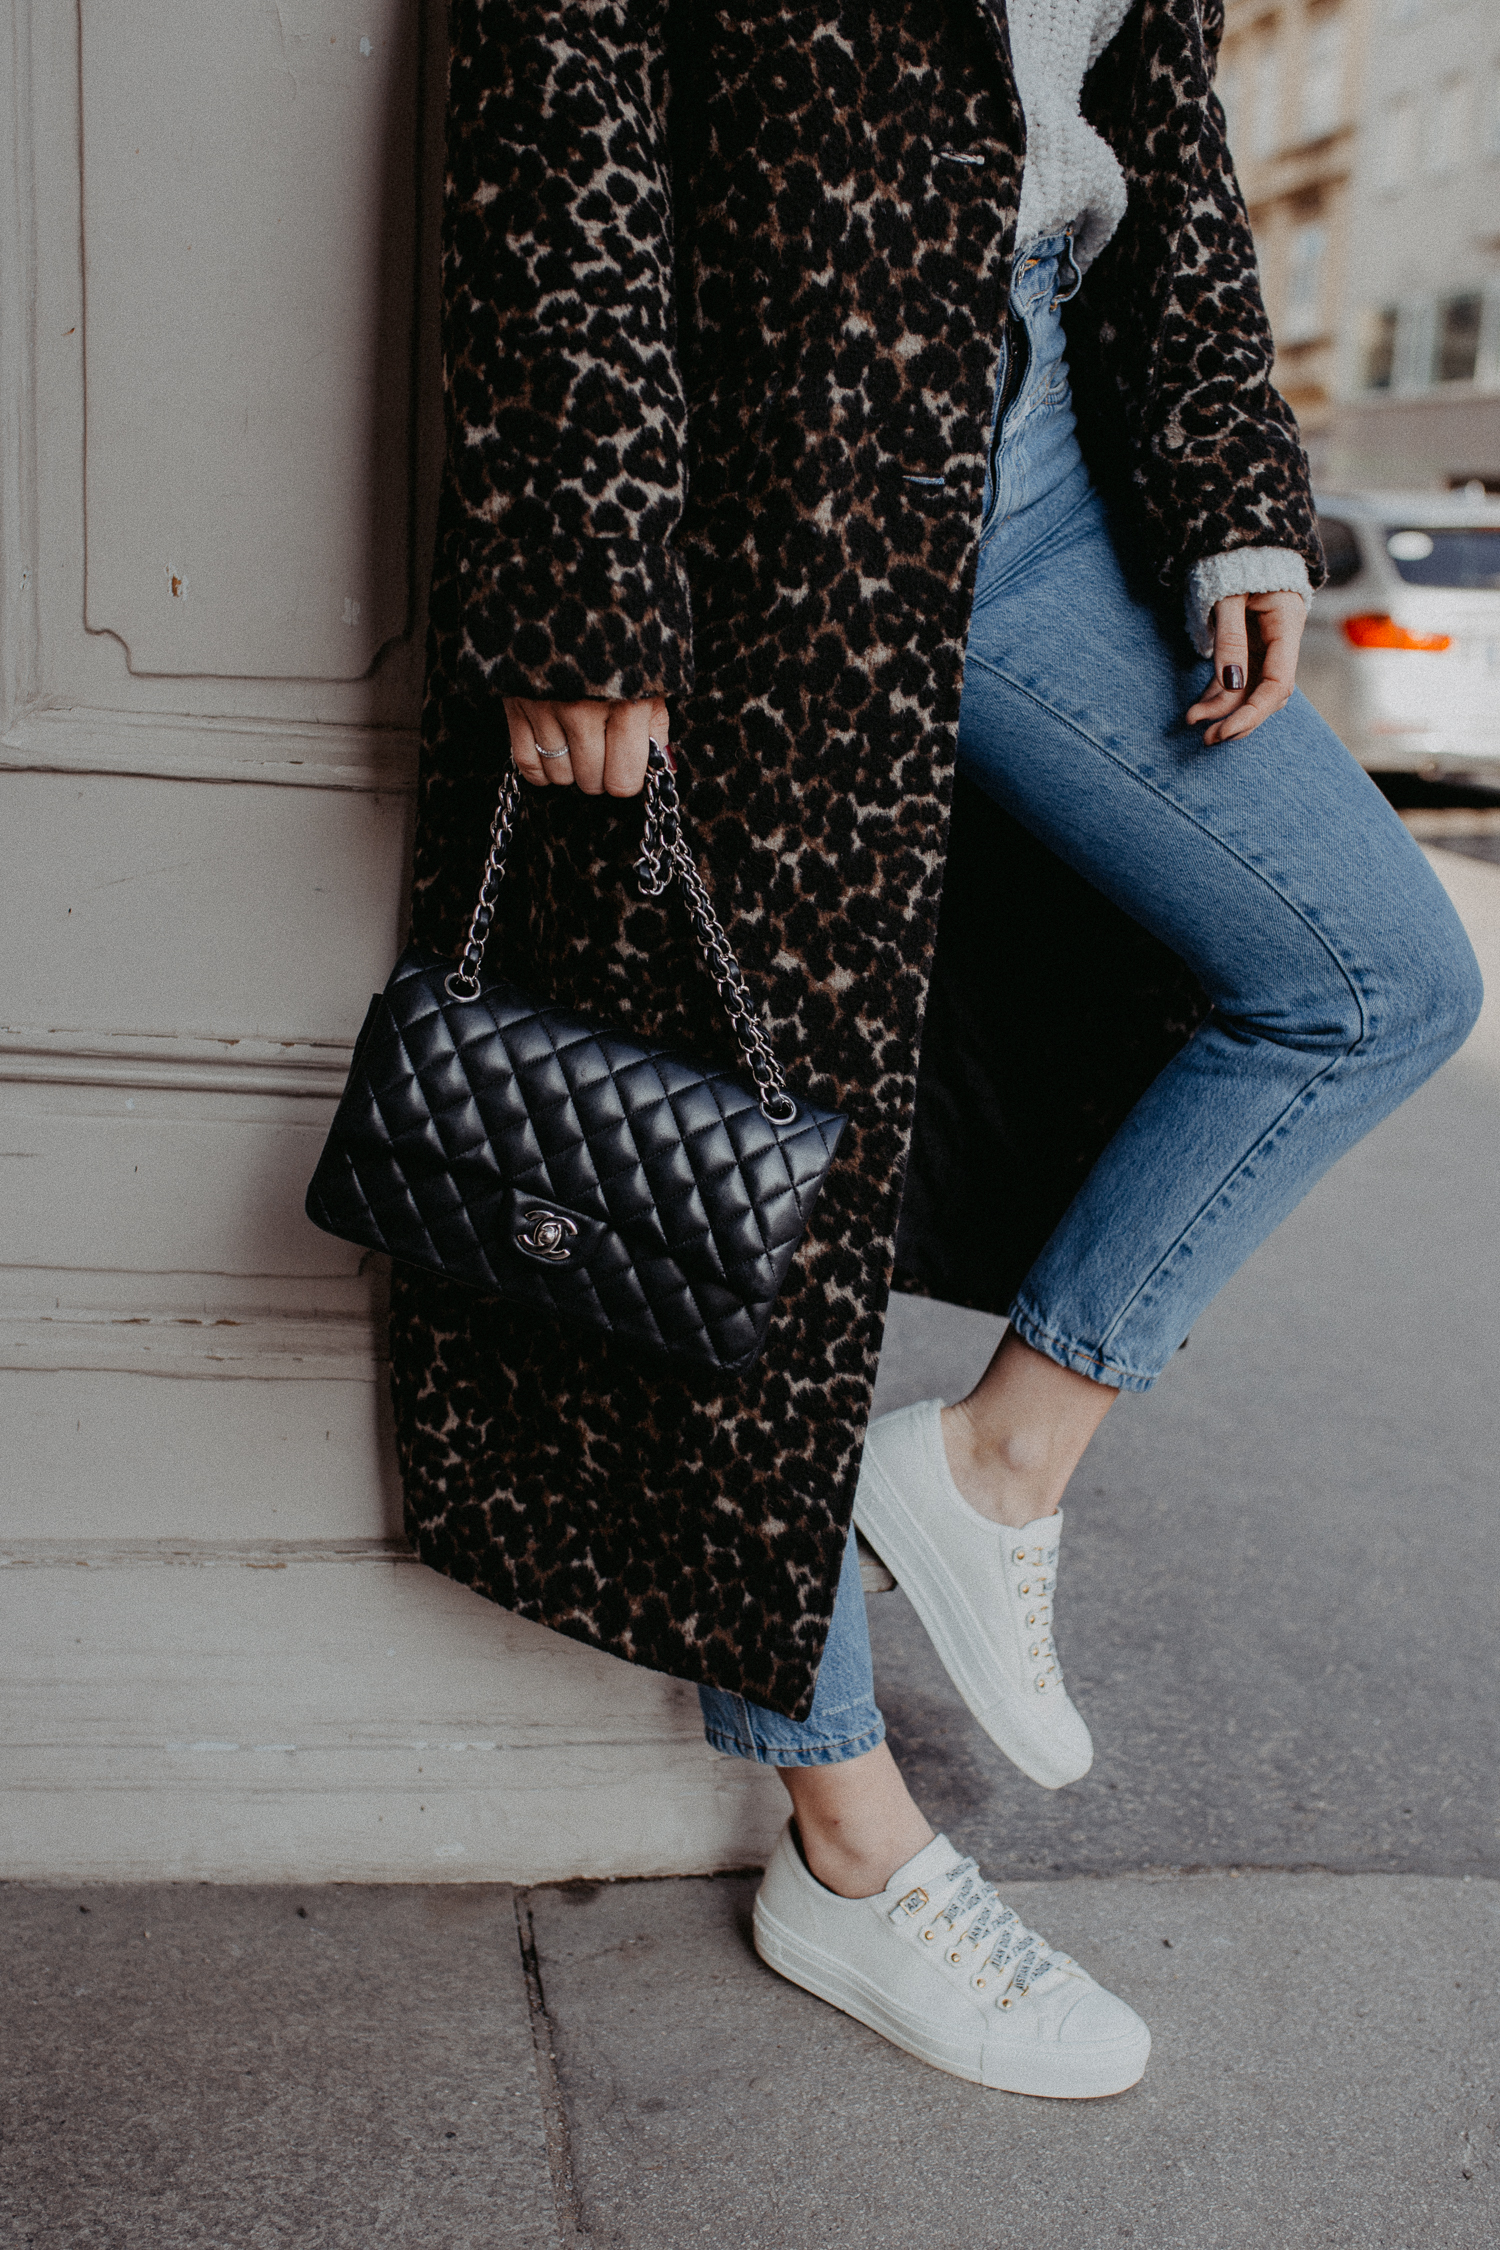 Outfit: Chanel classic flap bag + Dior sneakers | Bikinis & Passports